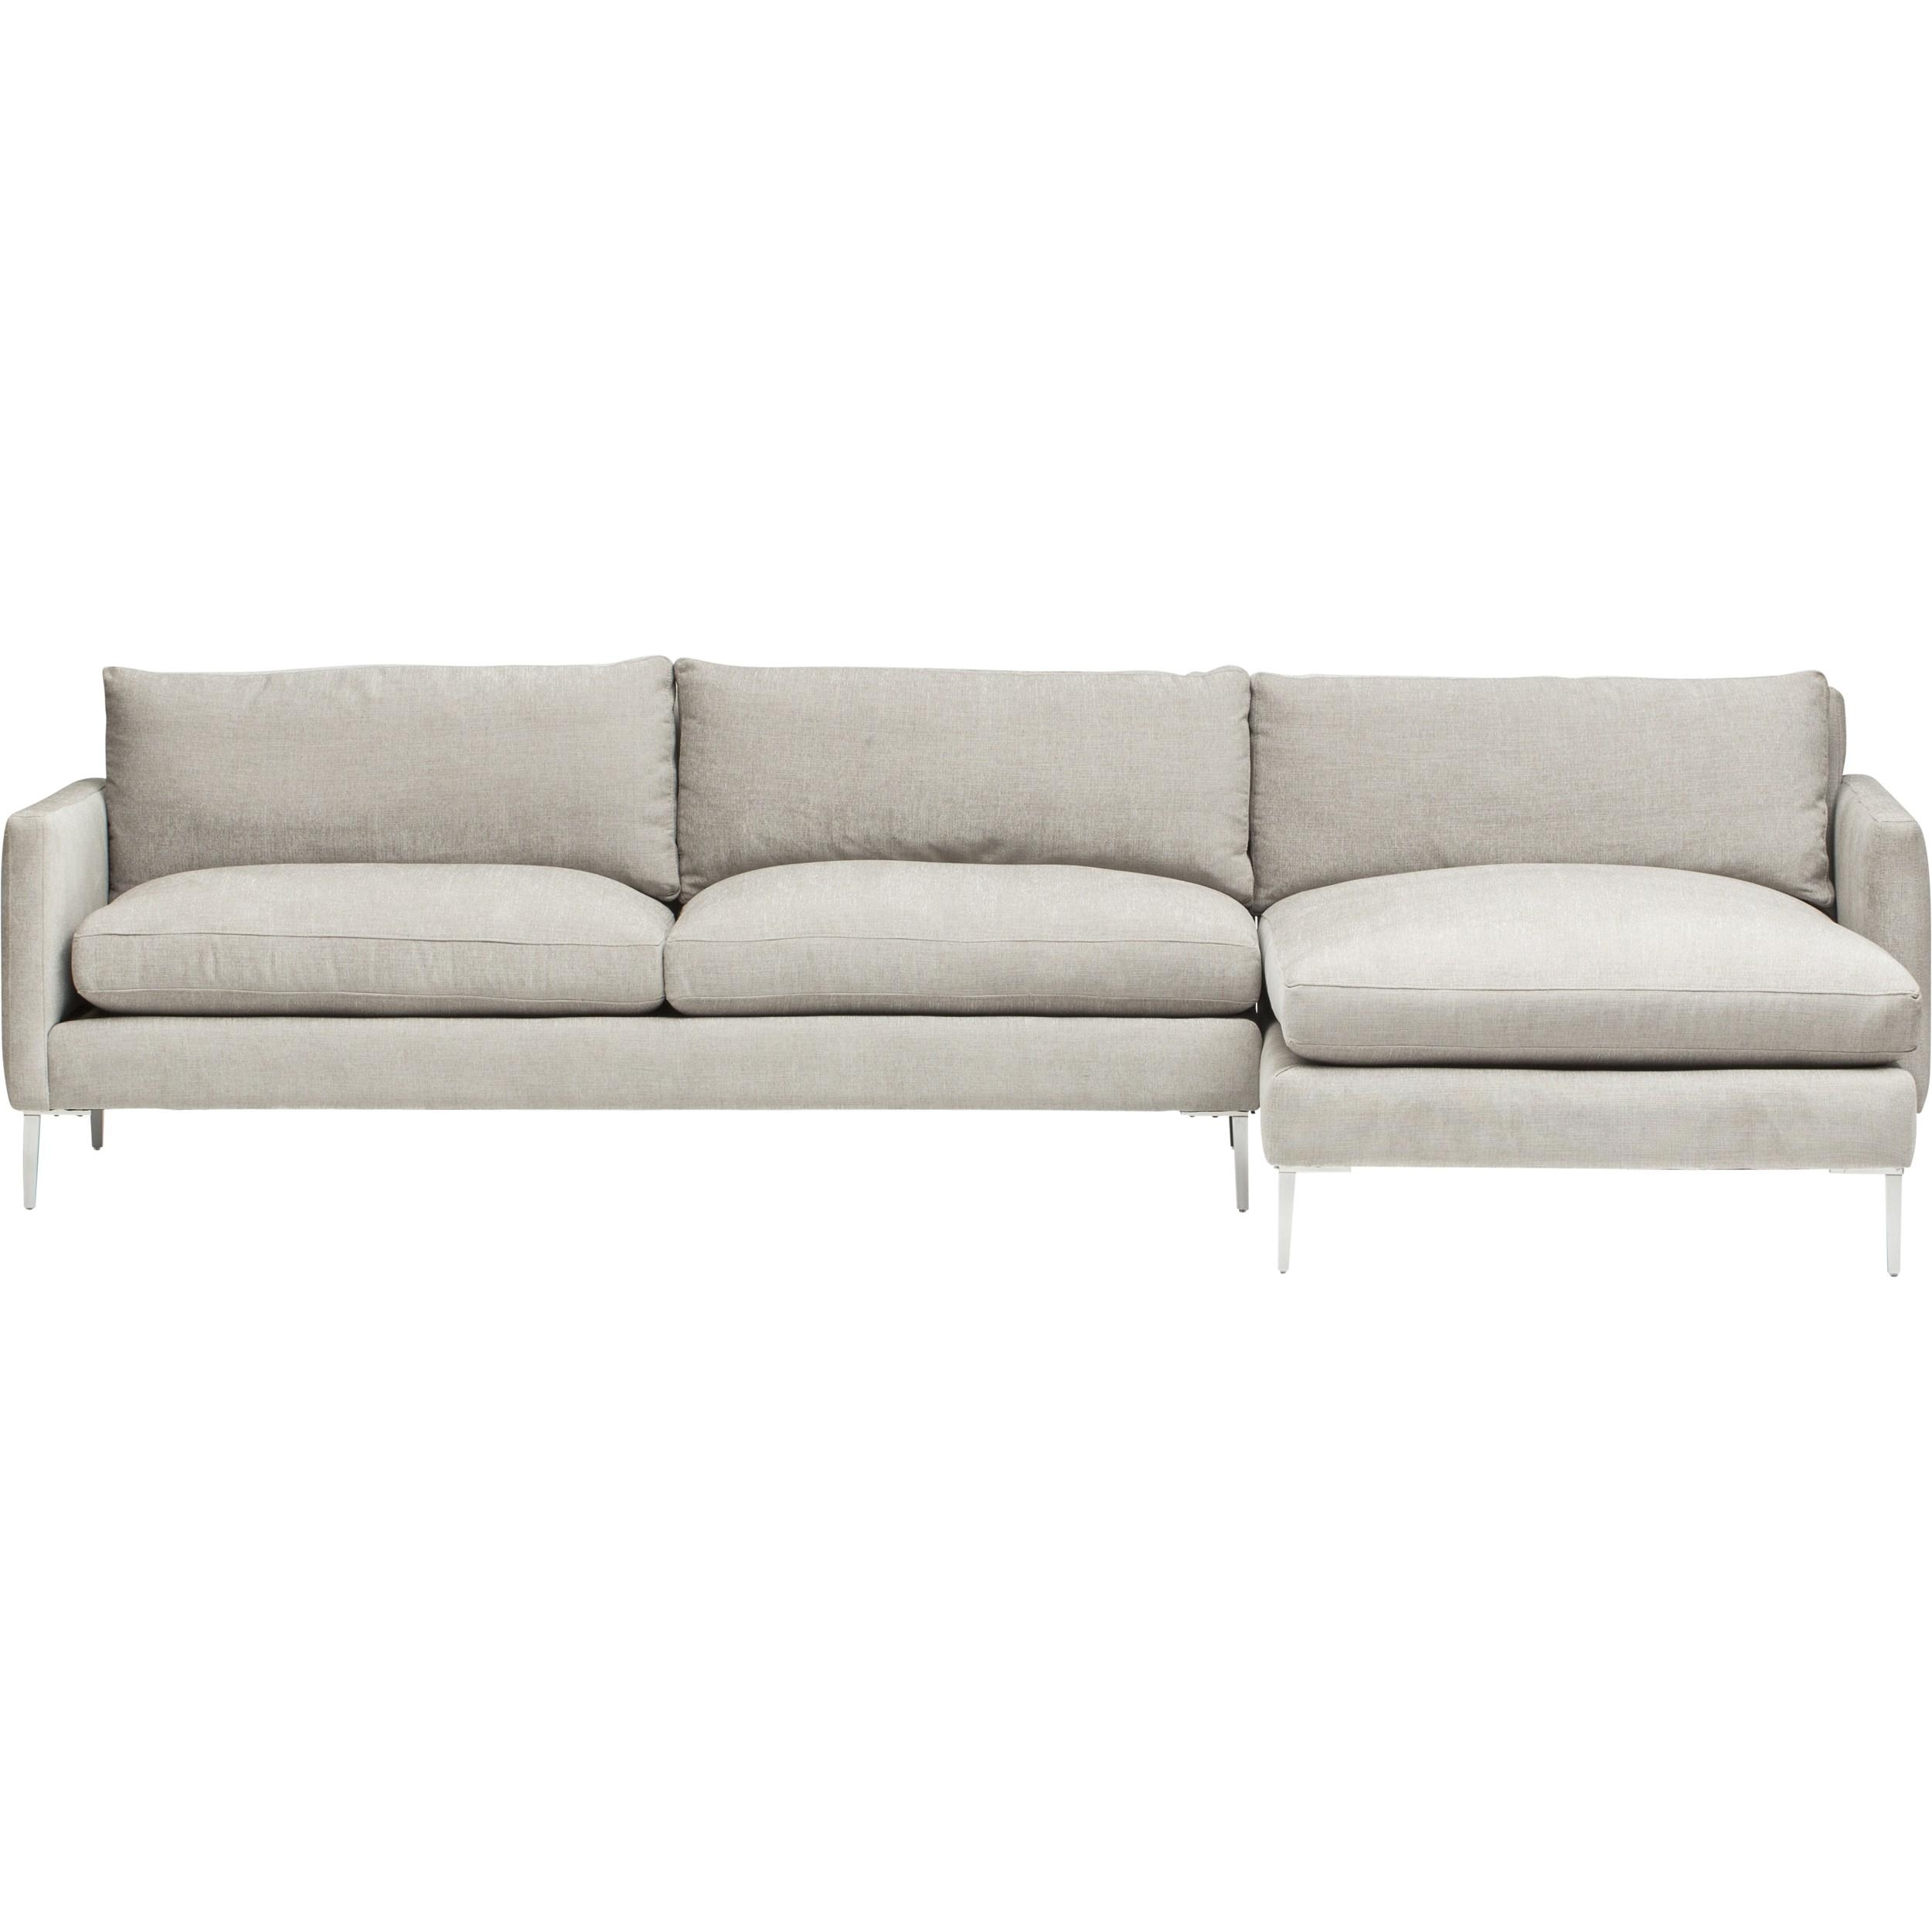 Marshall Sectional, Danville Cloud – Fabric – Sofas – Furniture Within Cloud Sectional Sofas (View 16 of 20)